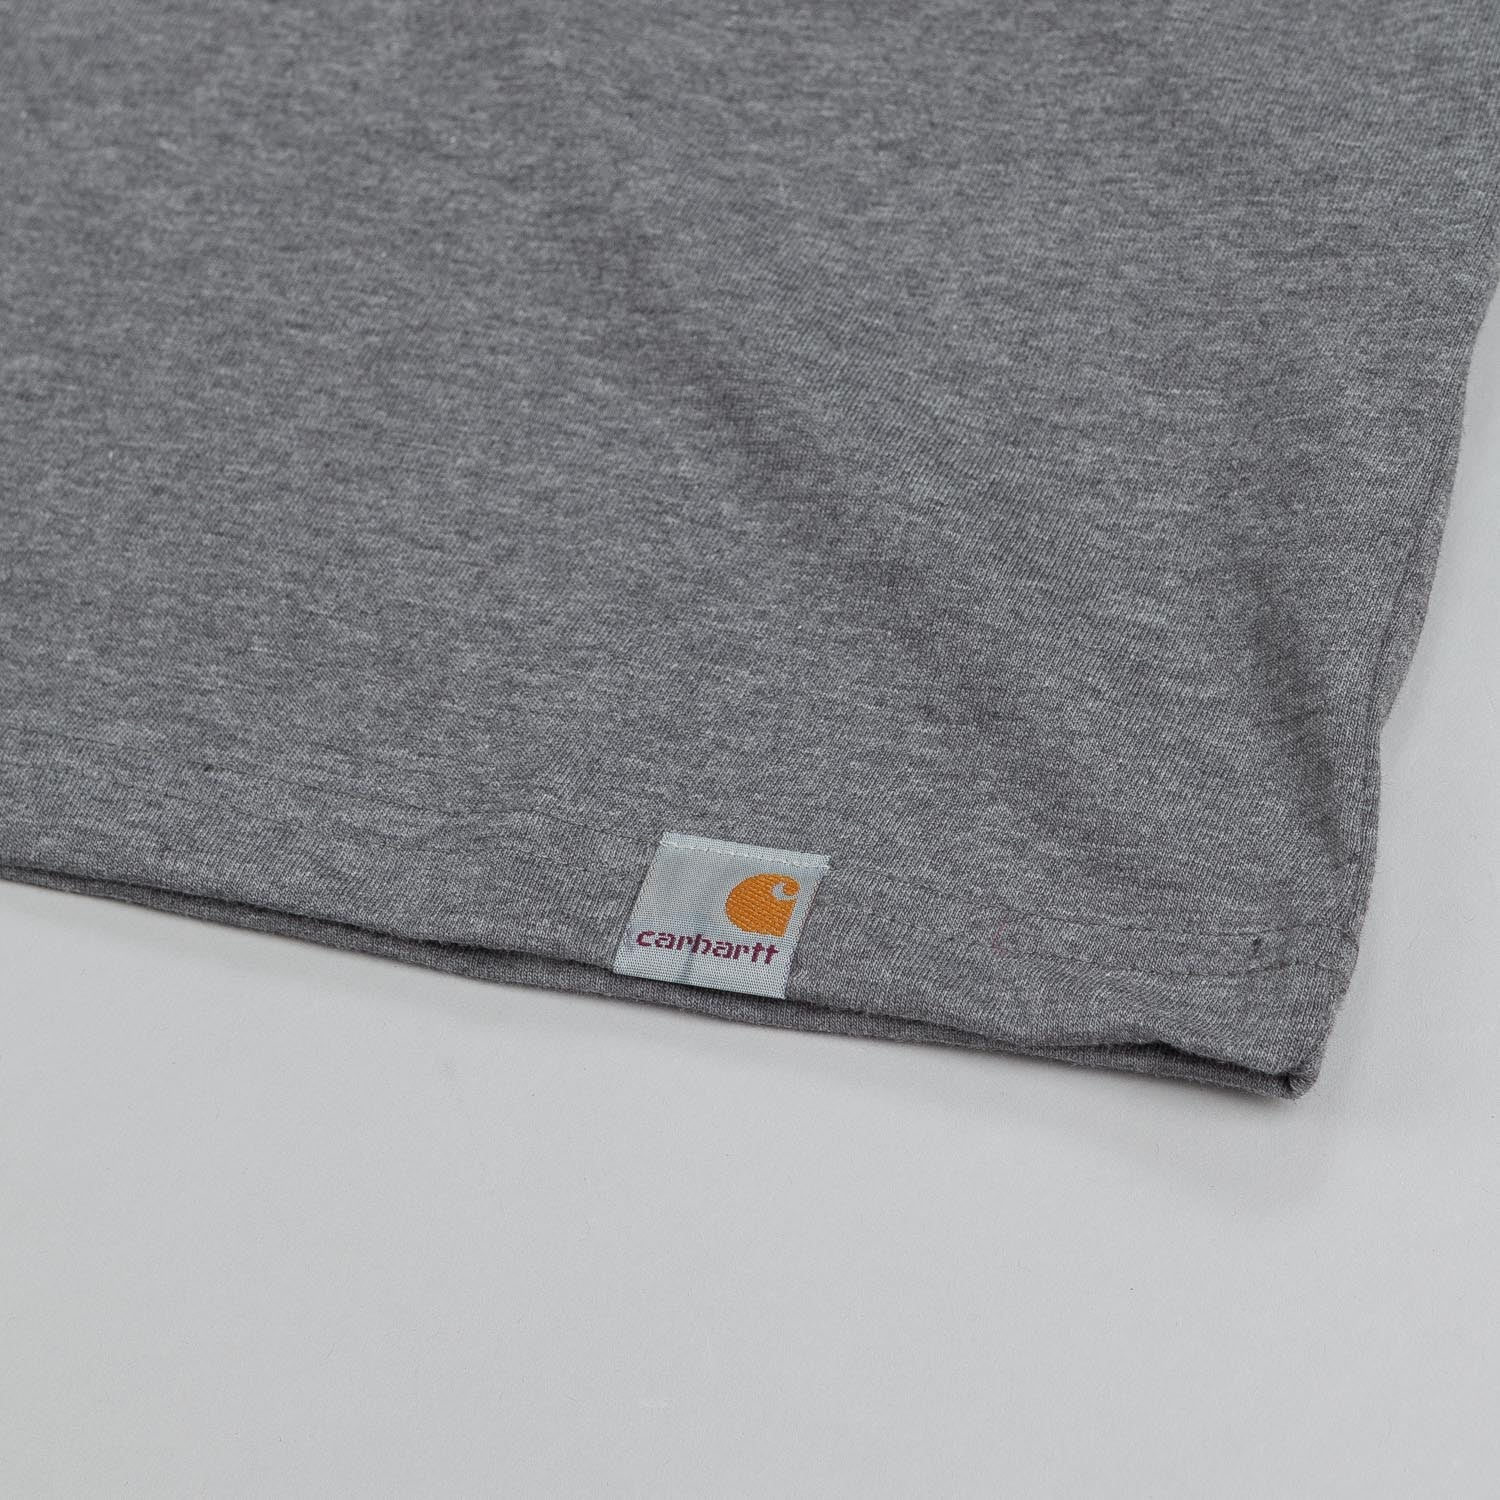 Carhartt X Polar Bust T Shirt Heather Grey